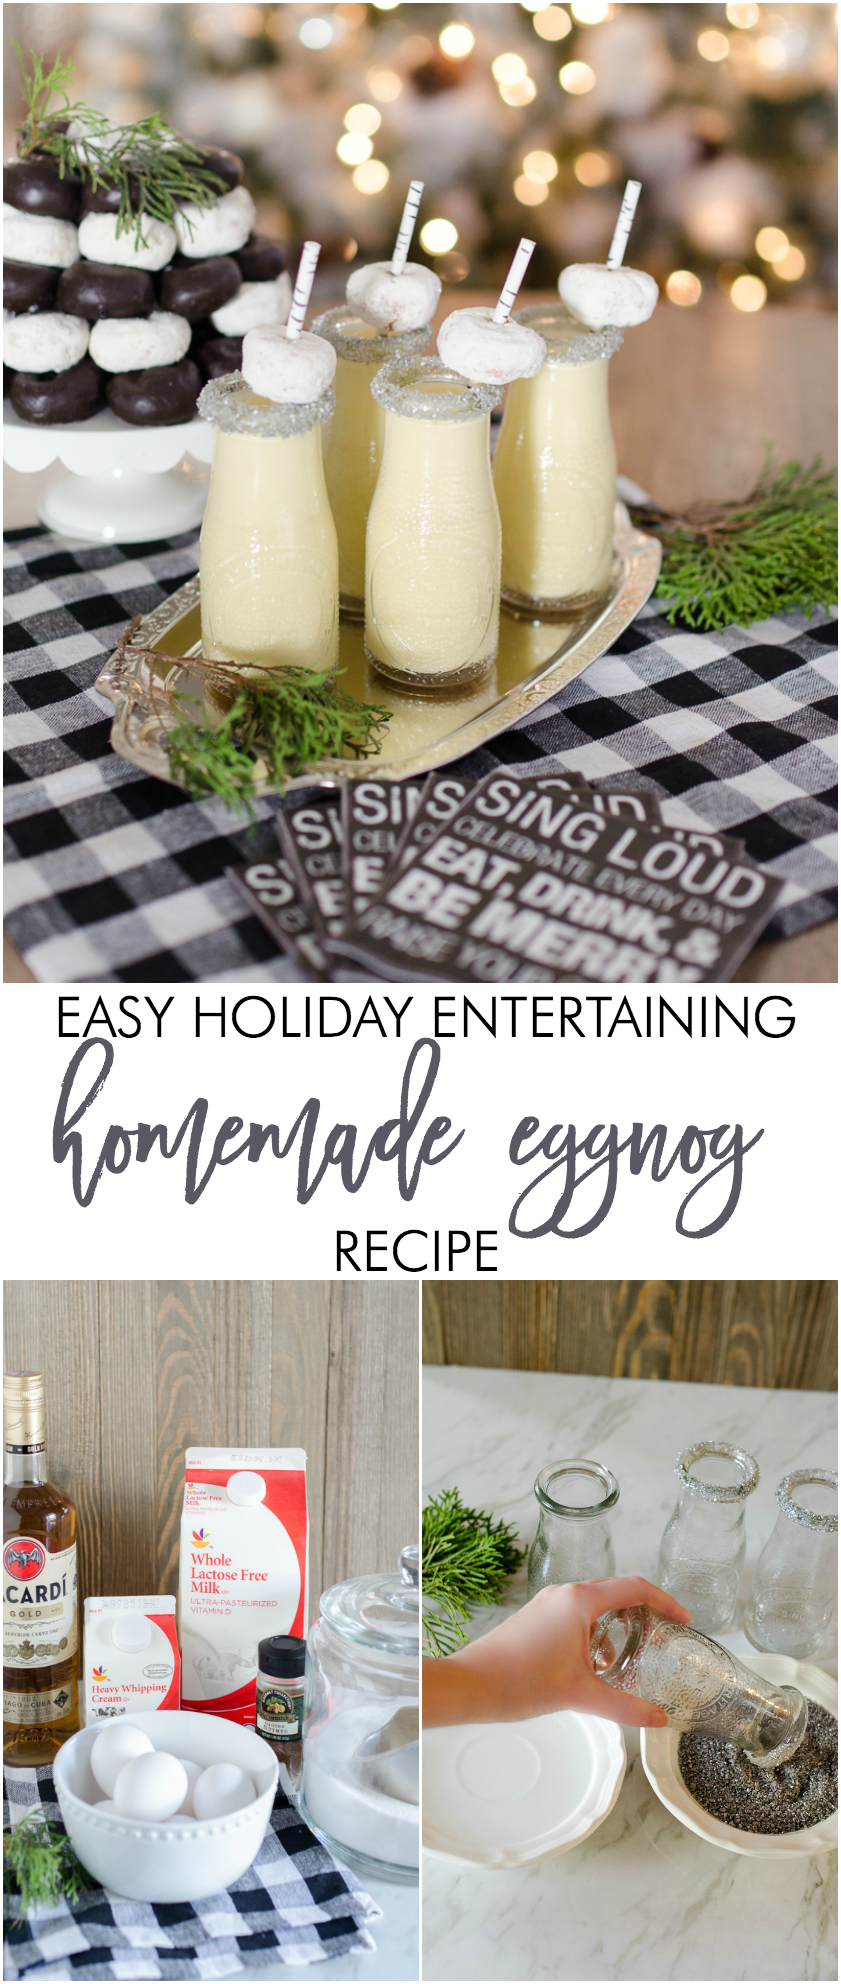 homemade-eggnog-recipe